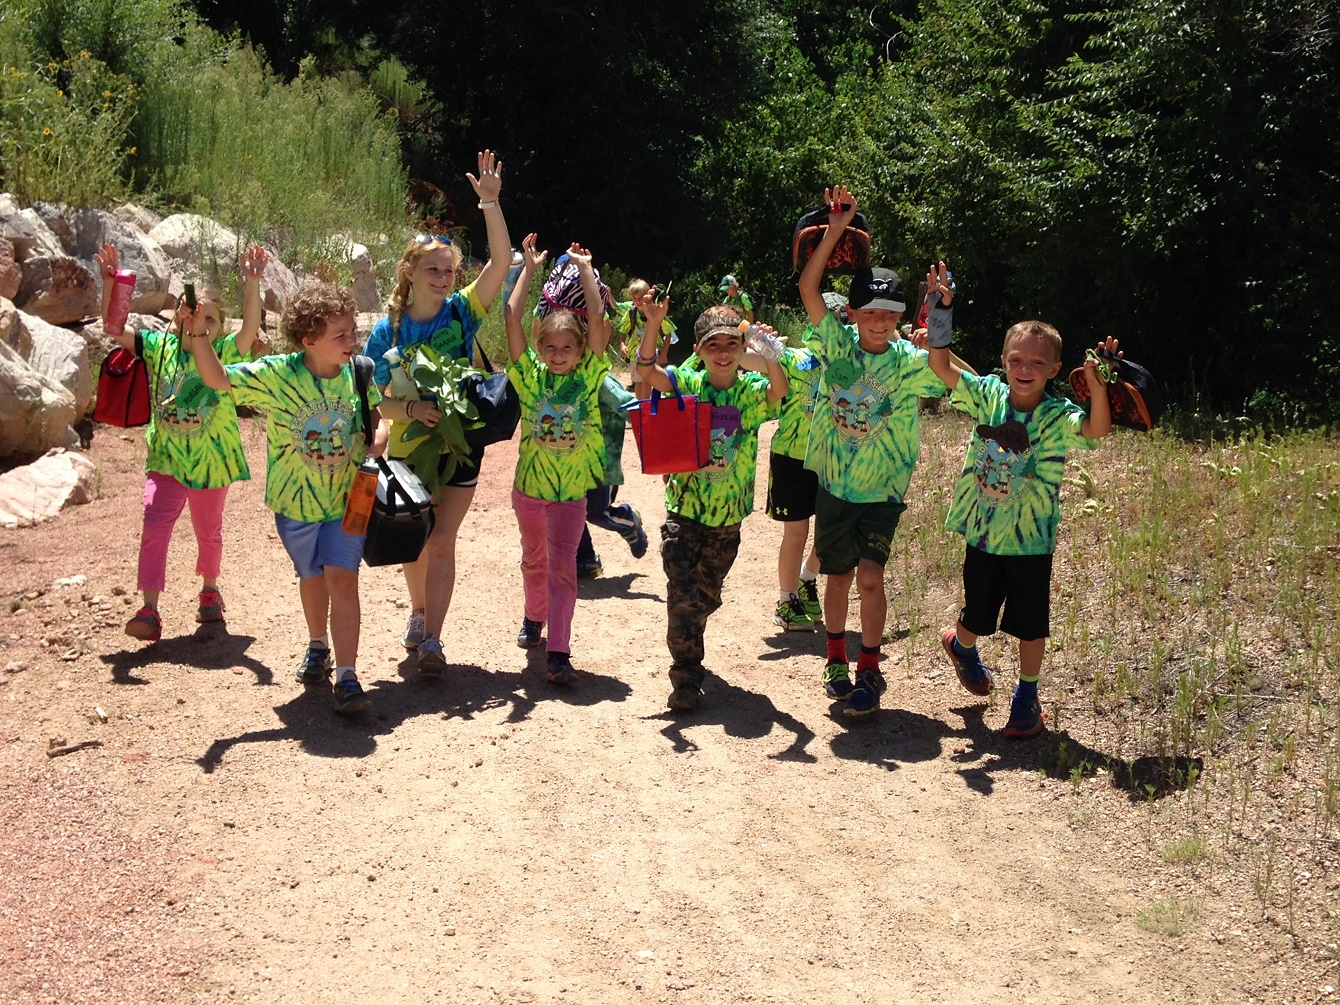 Nature campers walking down a trail